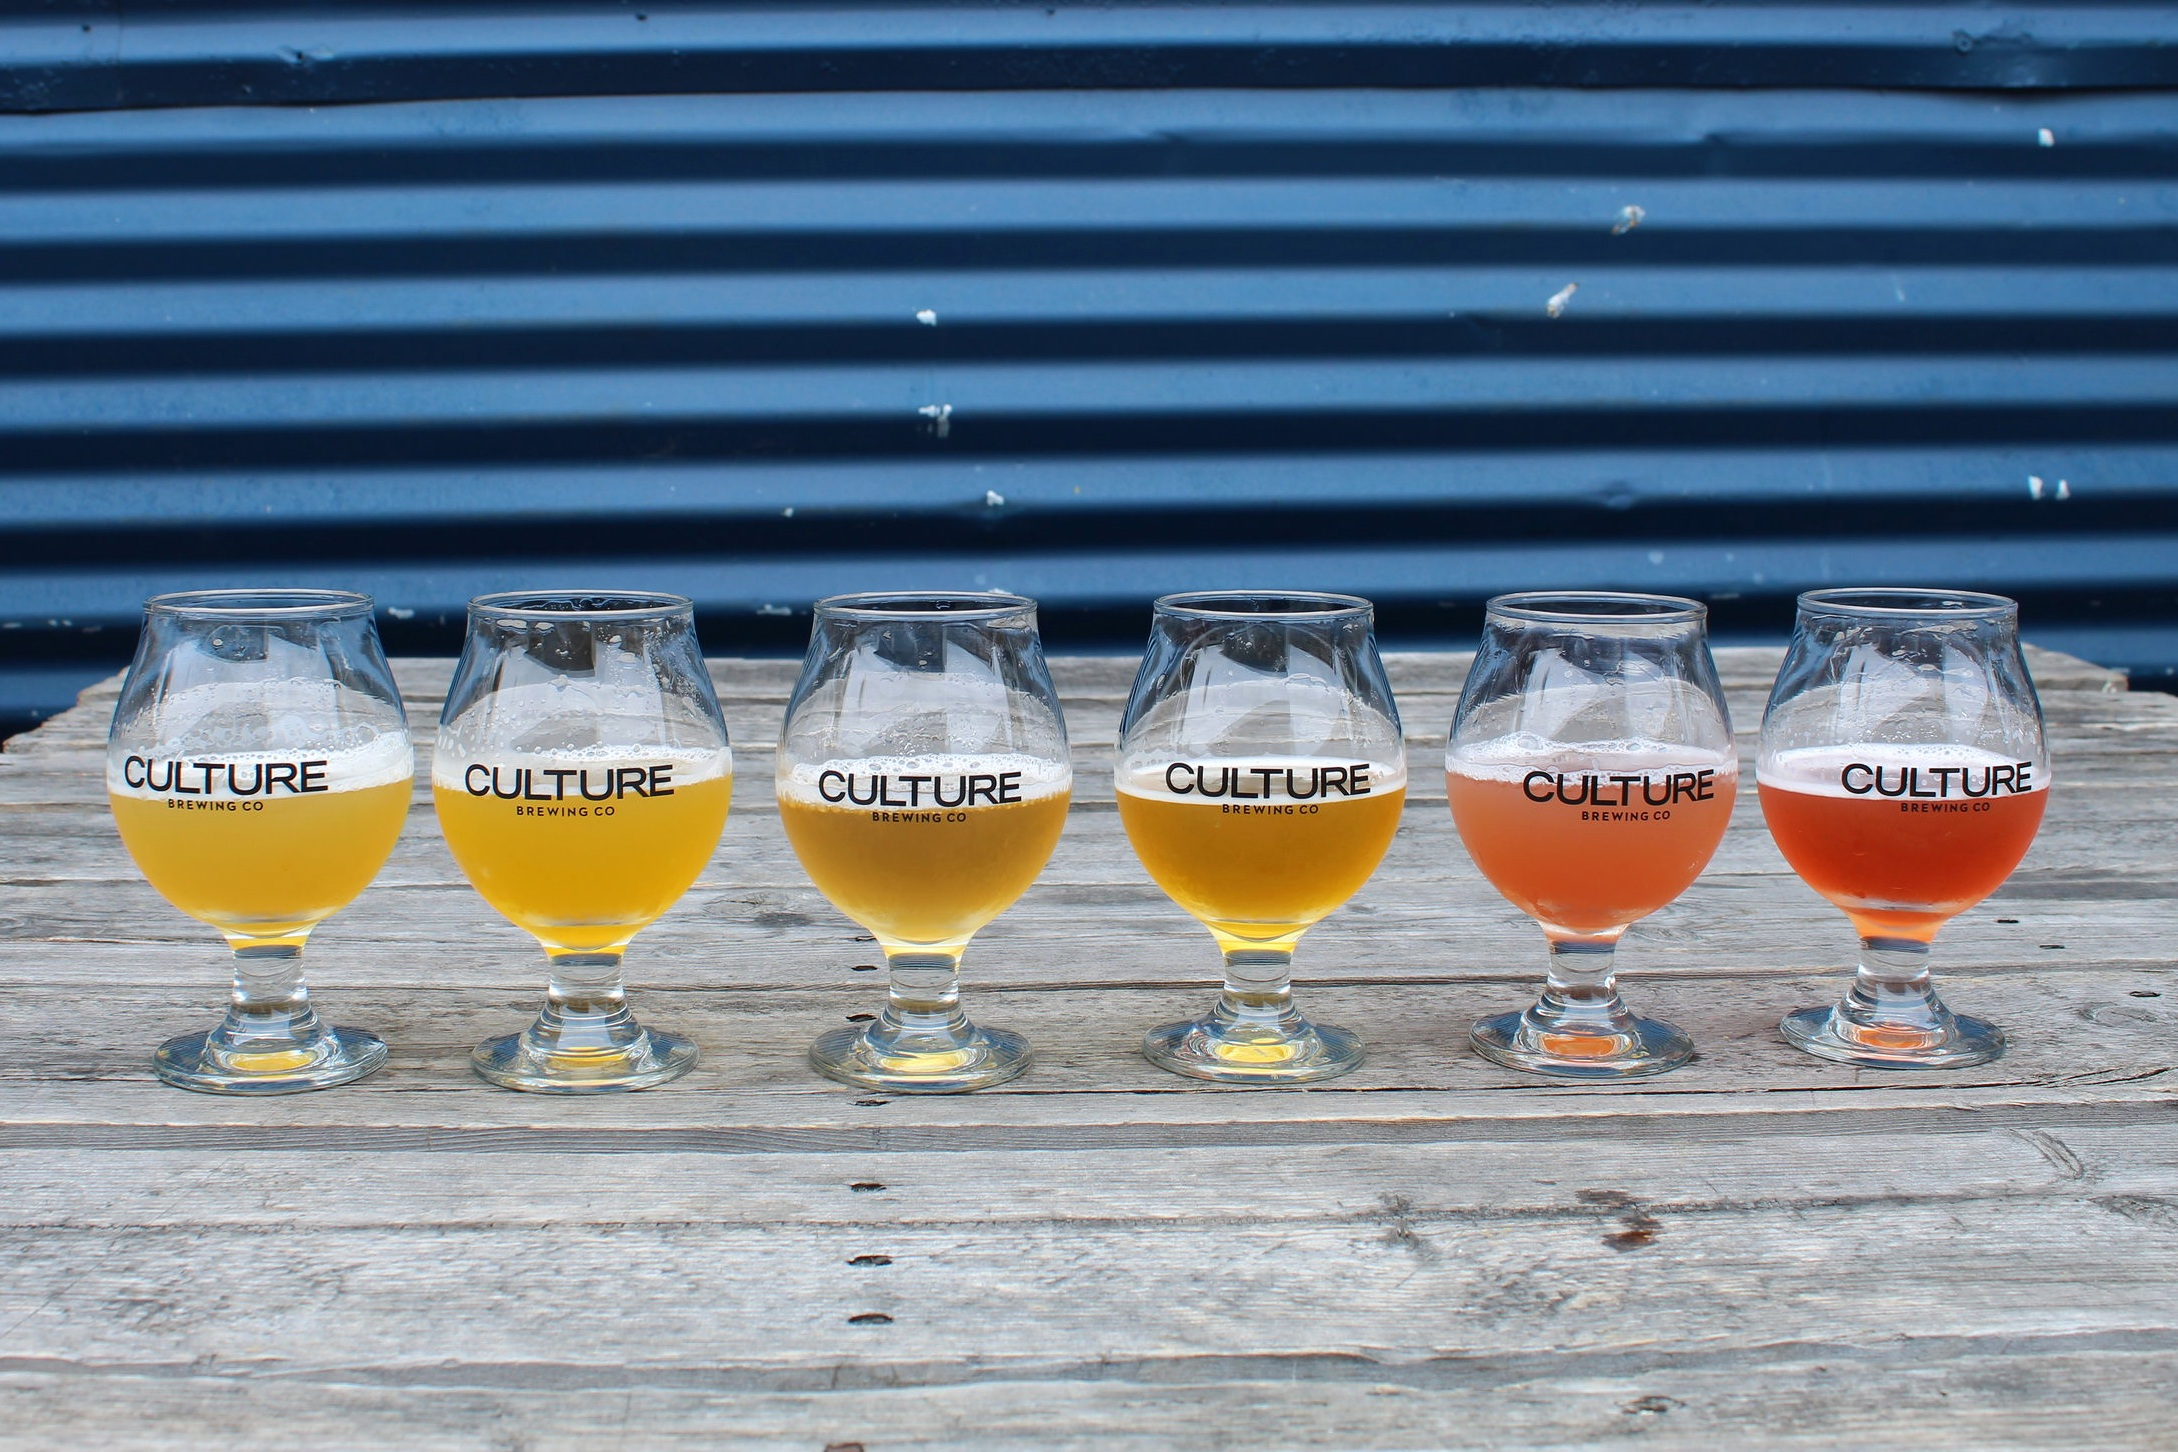 Left to Right: Traditional, Guava, Mango, Tangerine, Blueberry Pomegranate, and Strawberry Rhubarb.